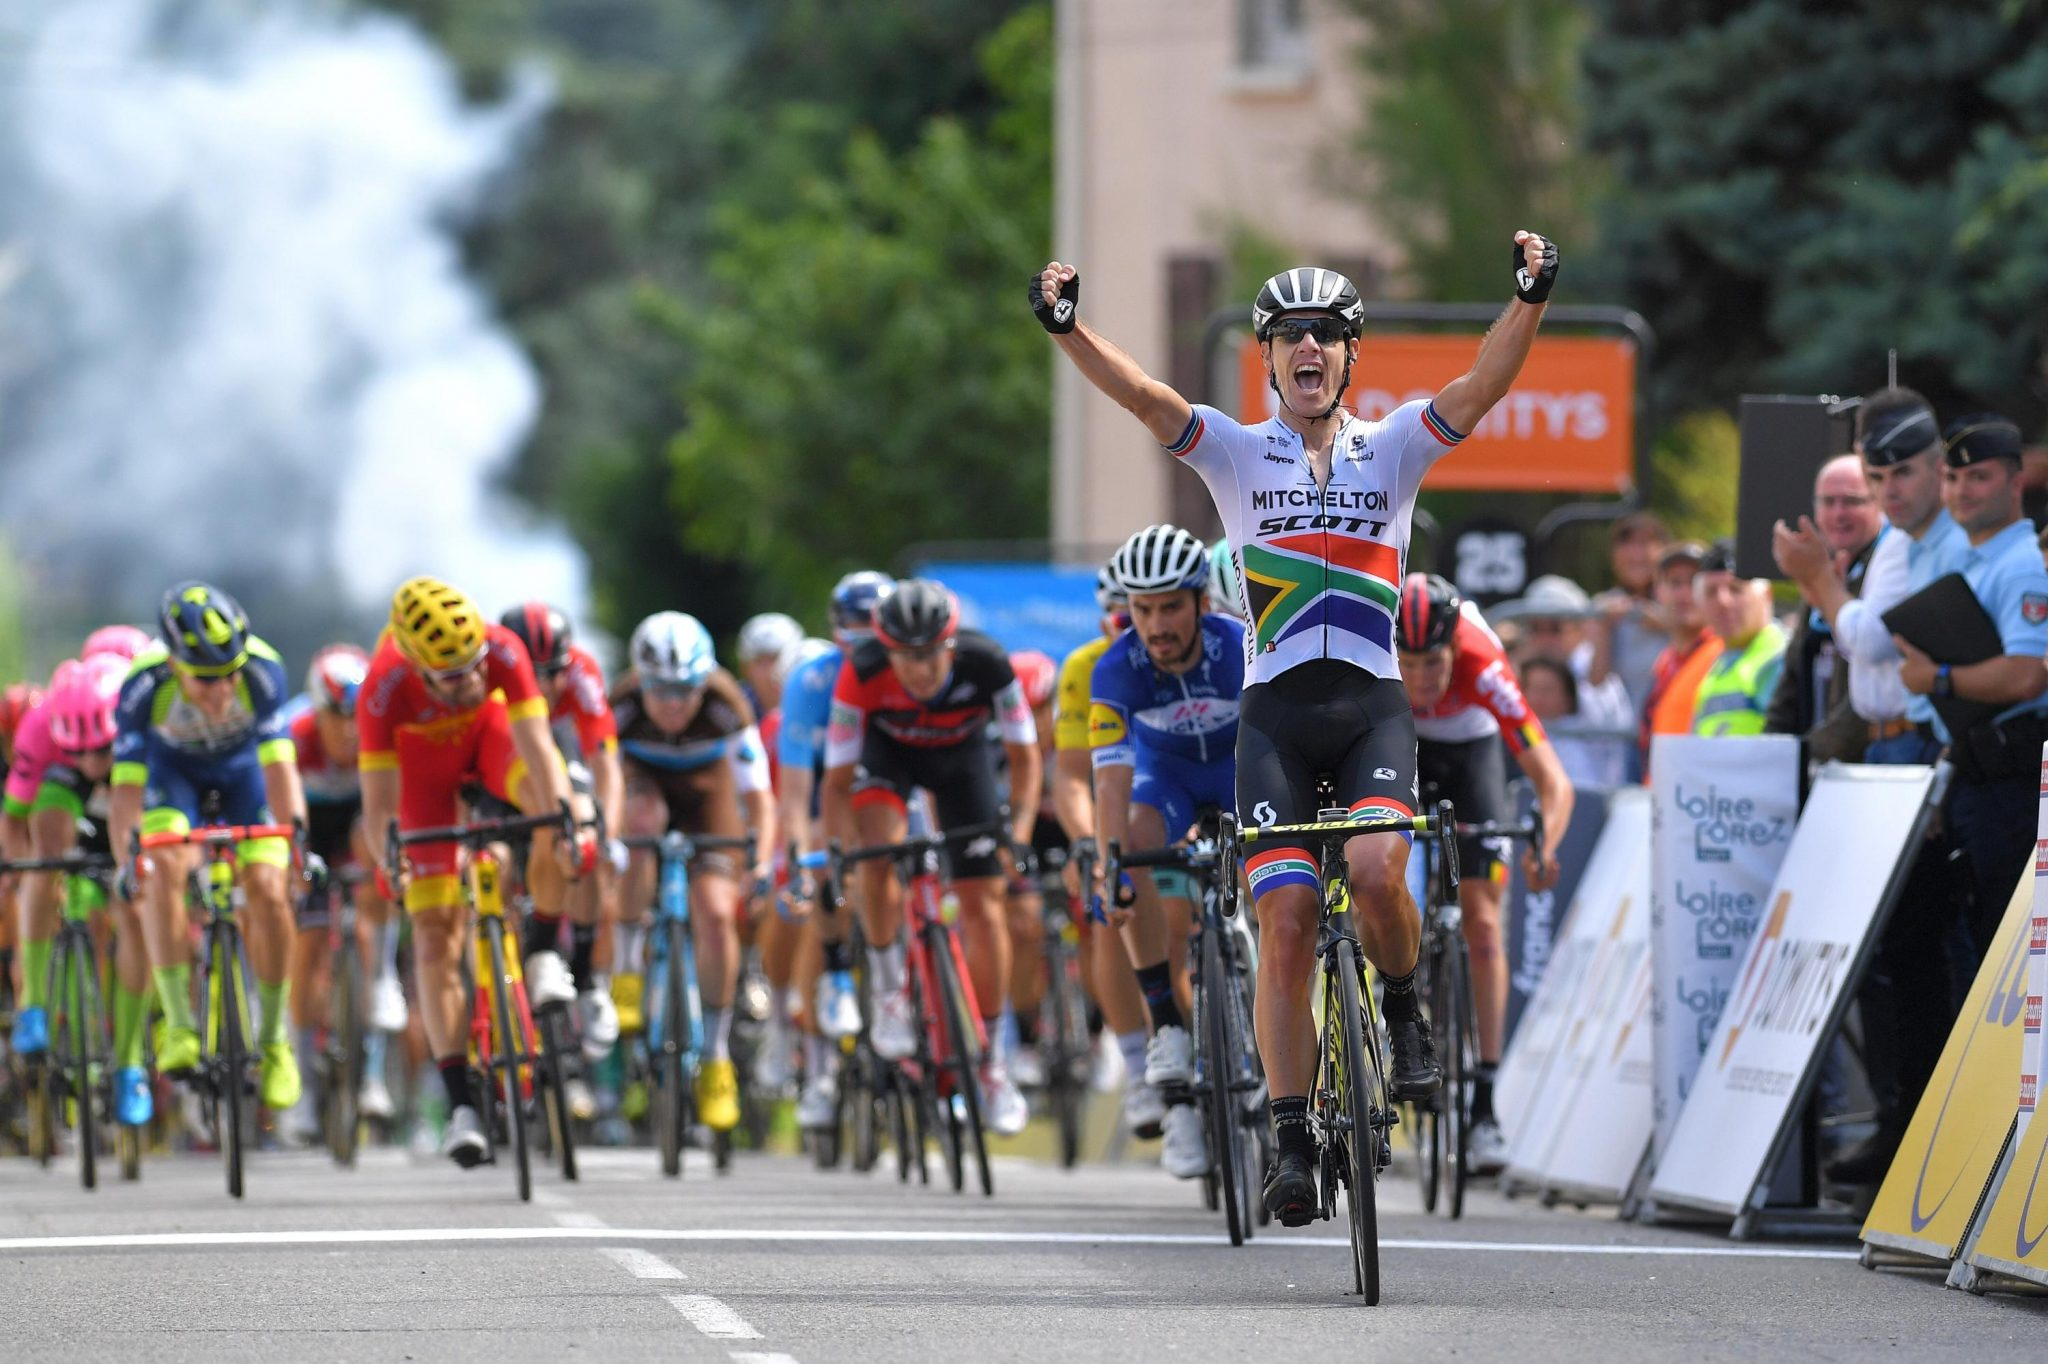 Daryl Impey sprint to victory at Criterium du Dauphine Stage 1 e29a46b0d